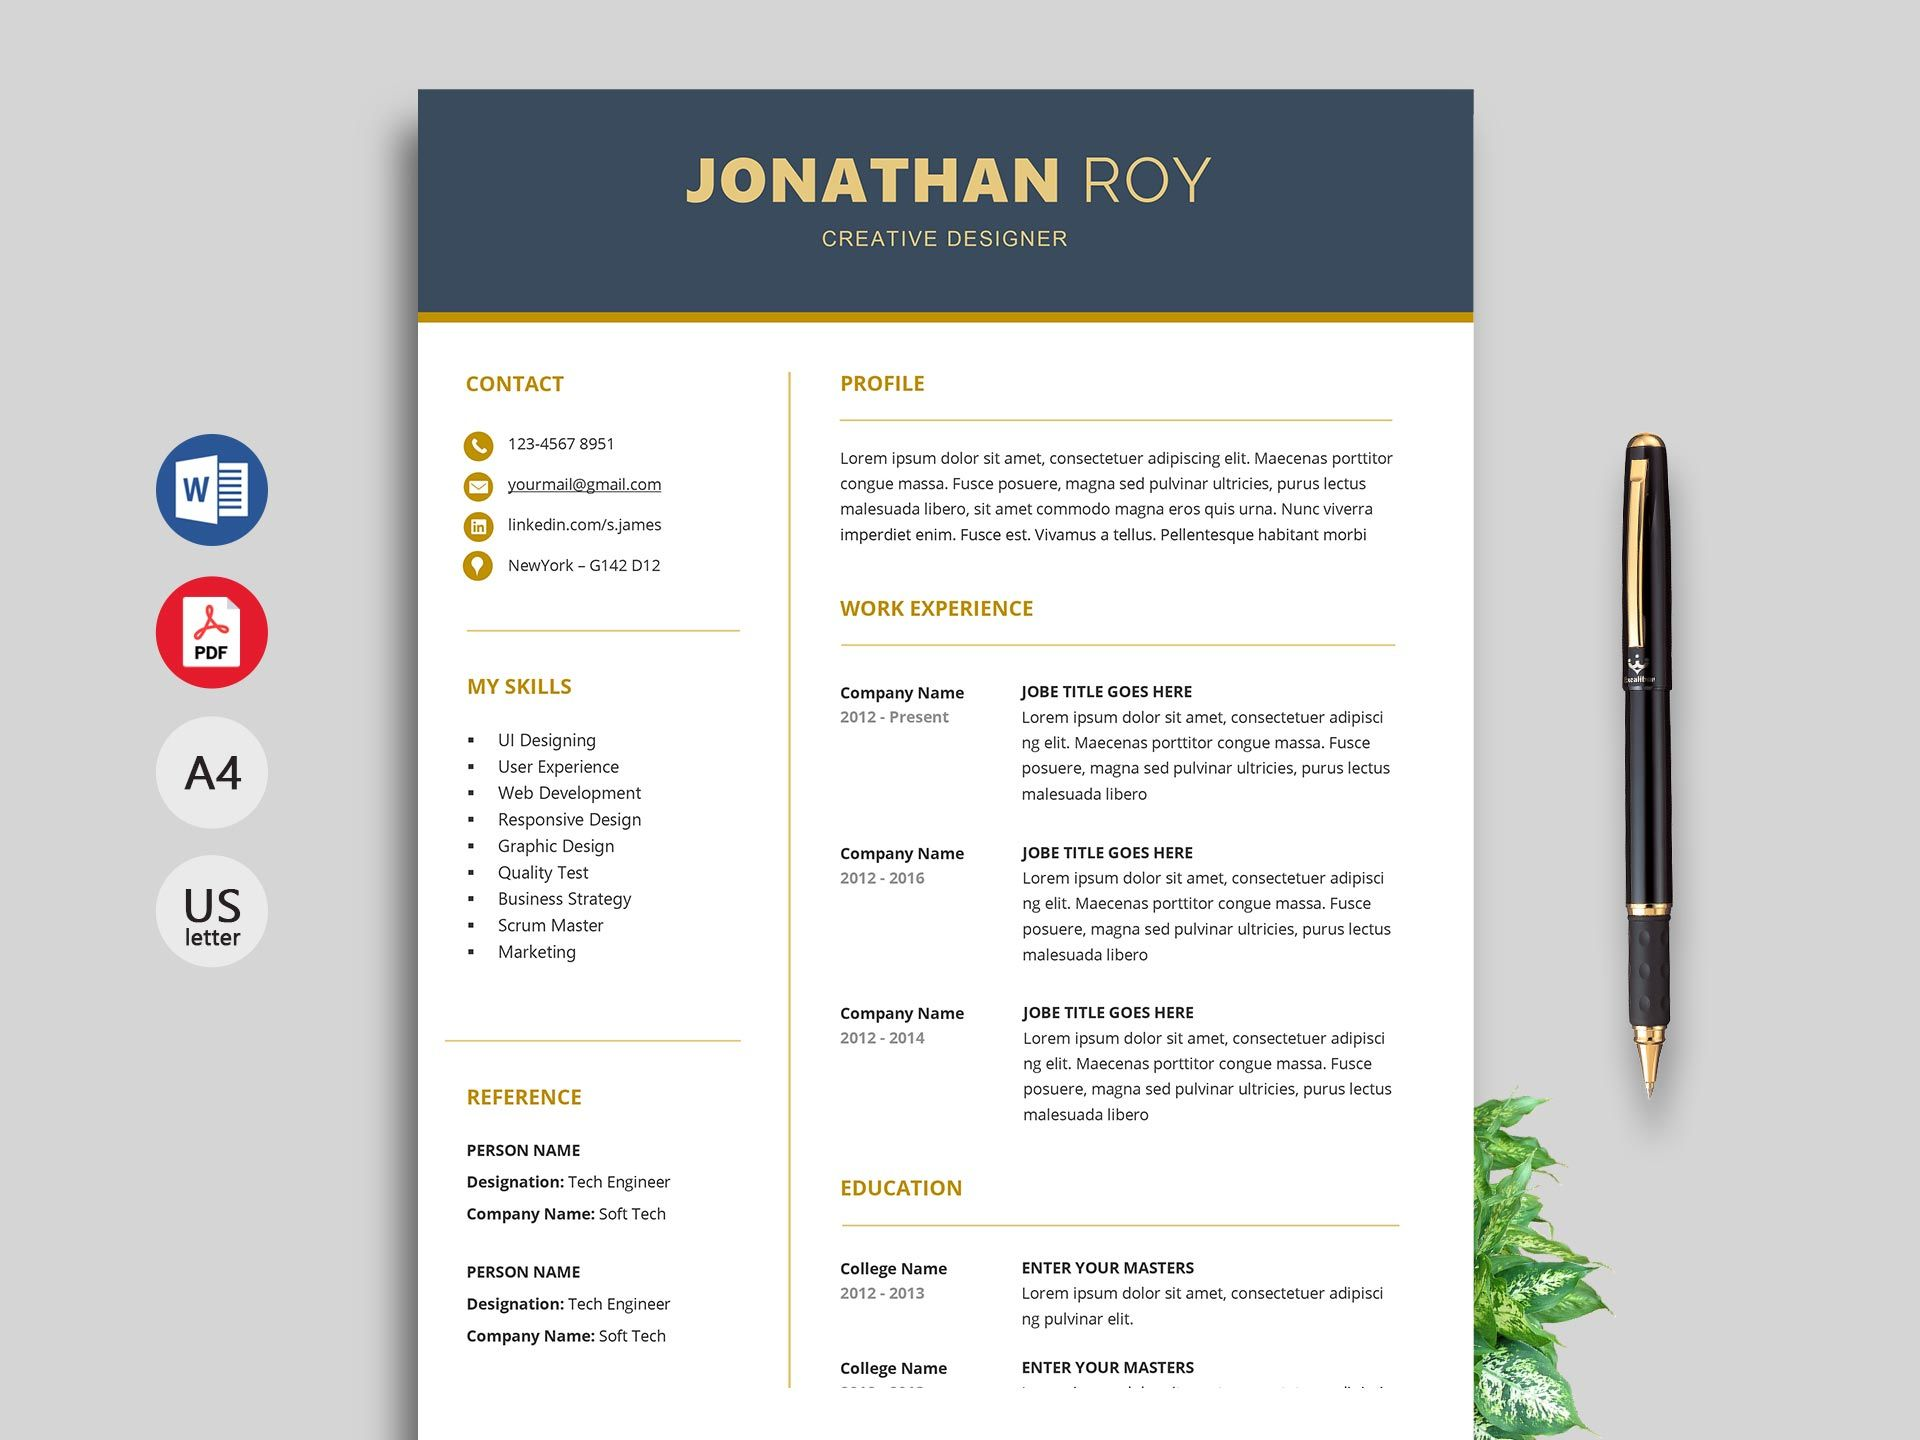 Free Resume & Cv Templates In Word Format 2020 in 2020